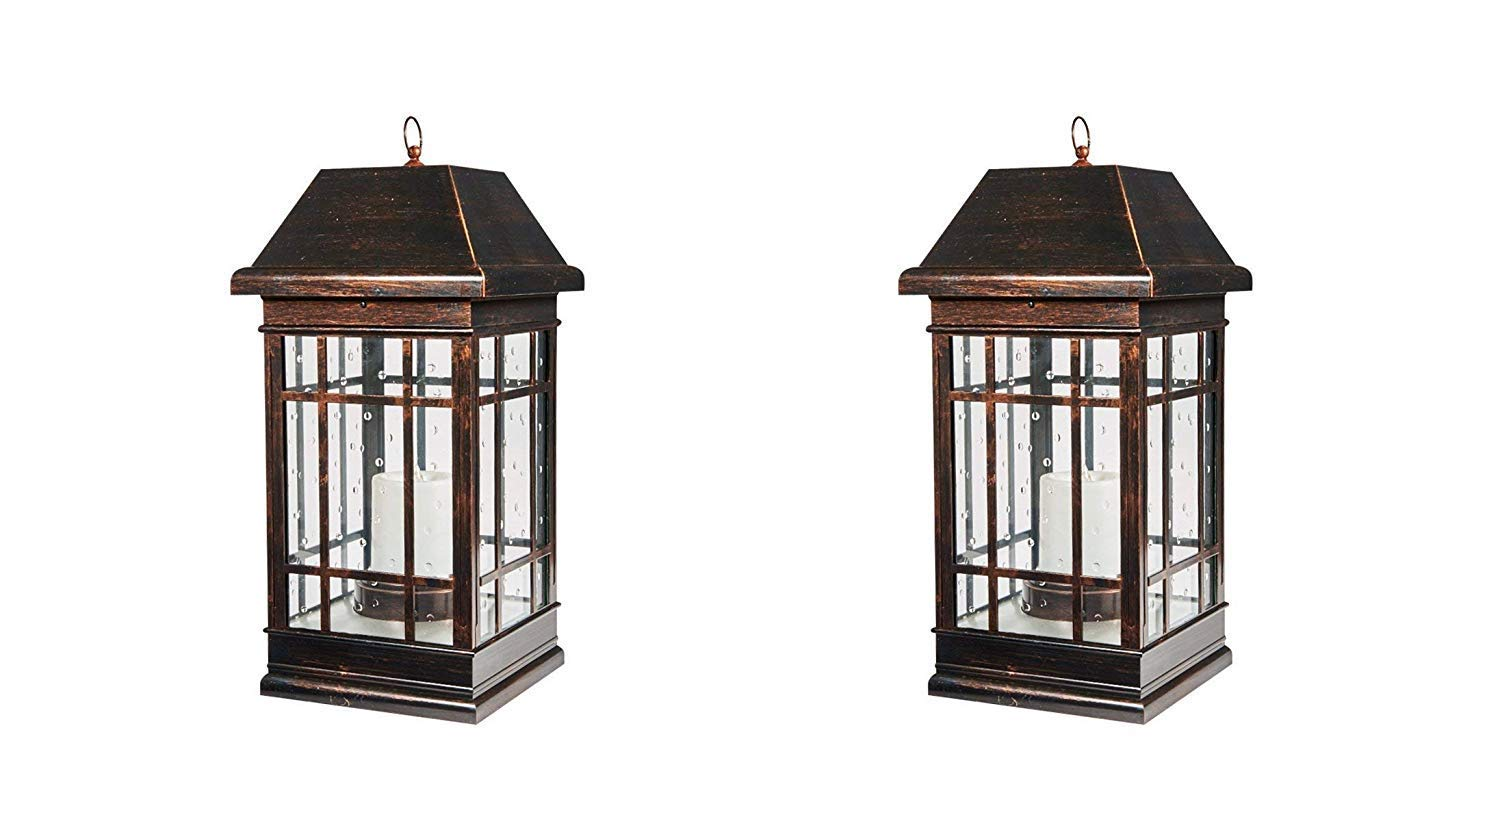 Smart Solar 3900KR1 San Rafael Mission Style Solar Lantern, Lantern is Illuminated by 2 High Performance Warm White LEDs in The Top, 22-Inch, Antique-Bronze (Pack of 2) by Smart Solar (Image #1)